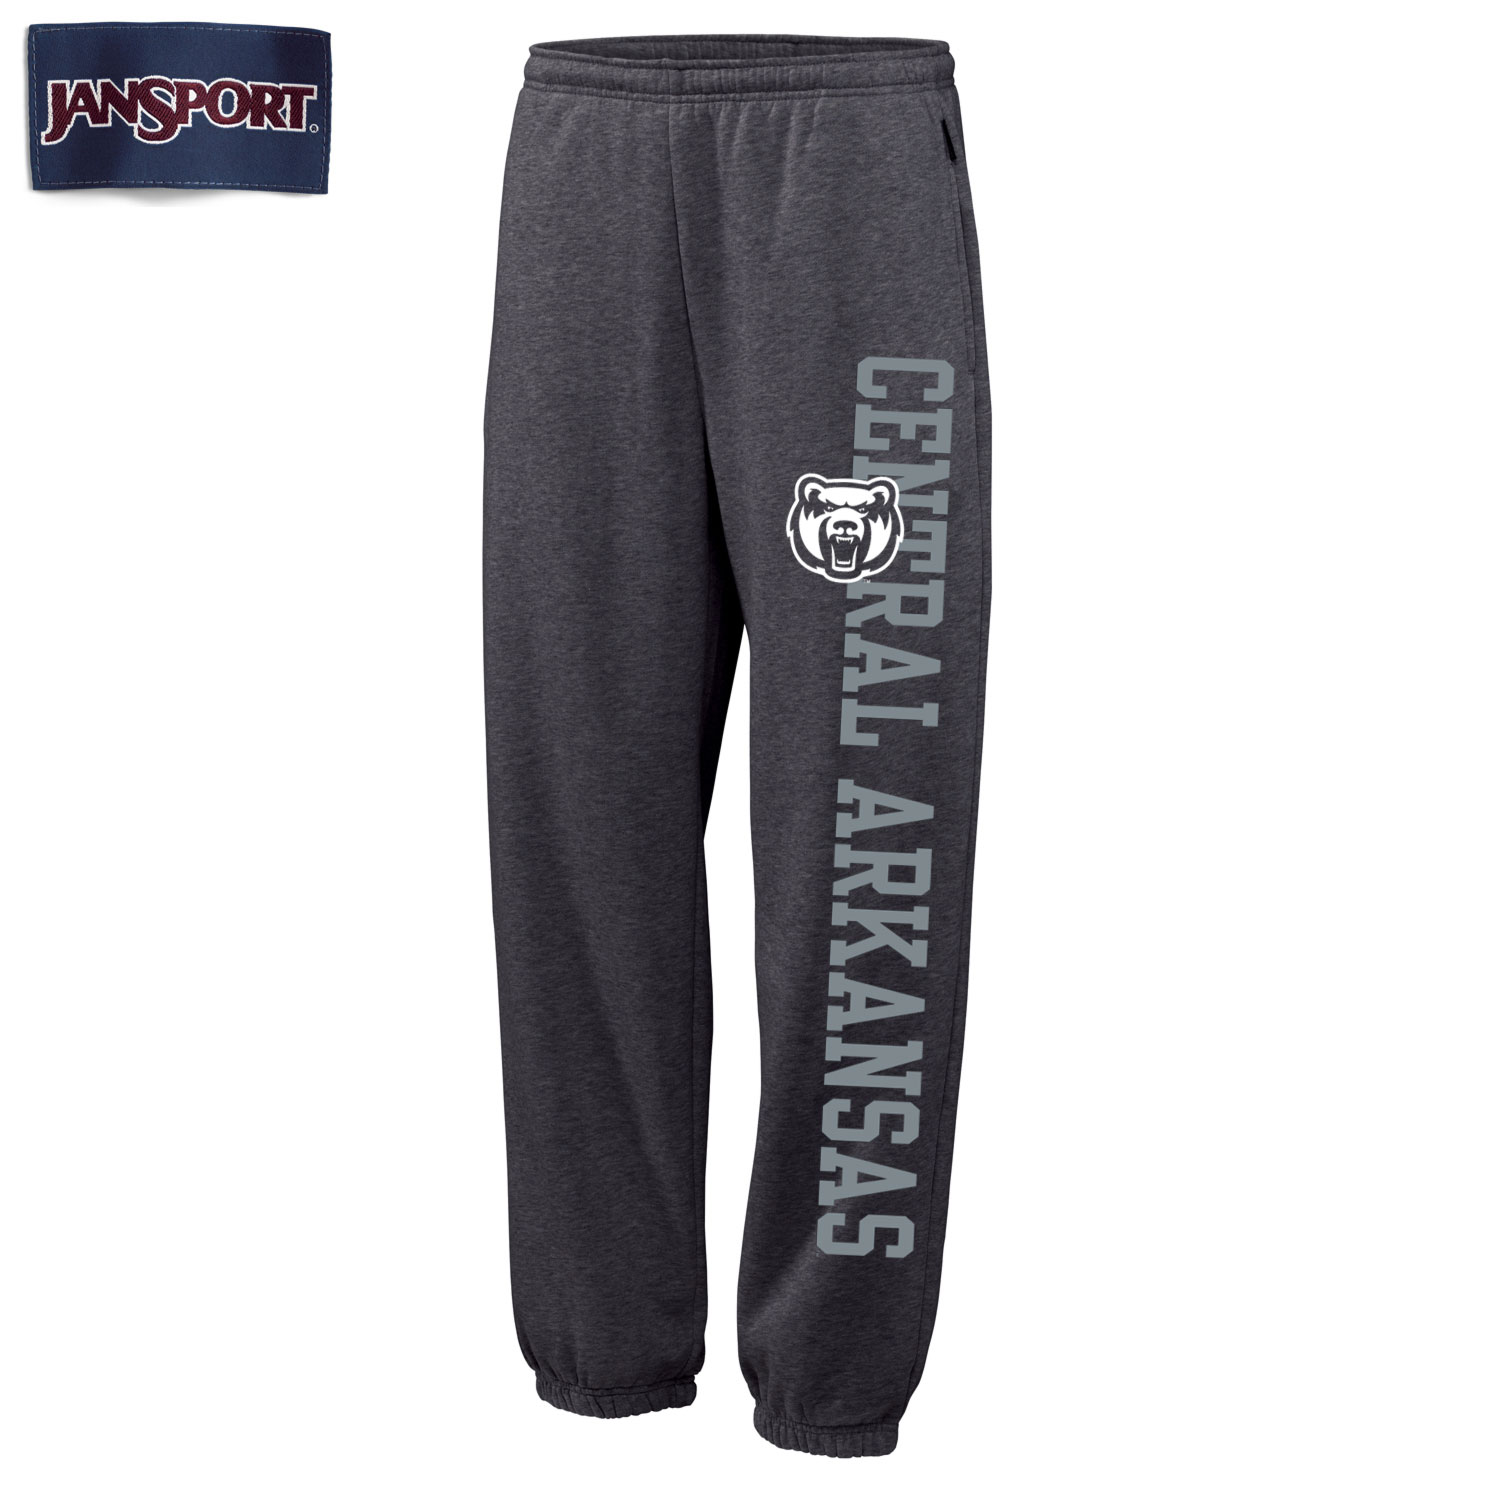 Quad Fleece Pants